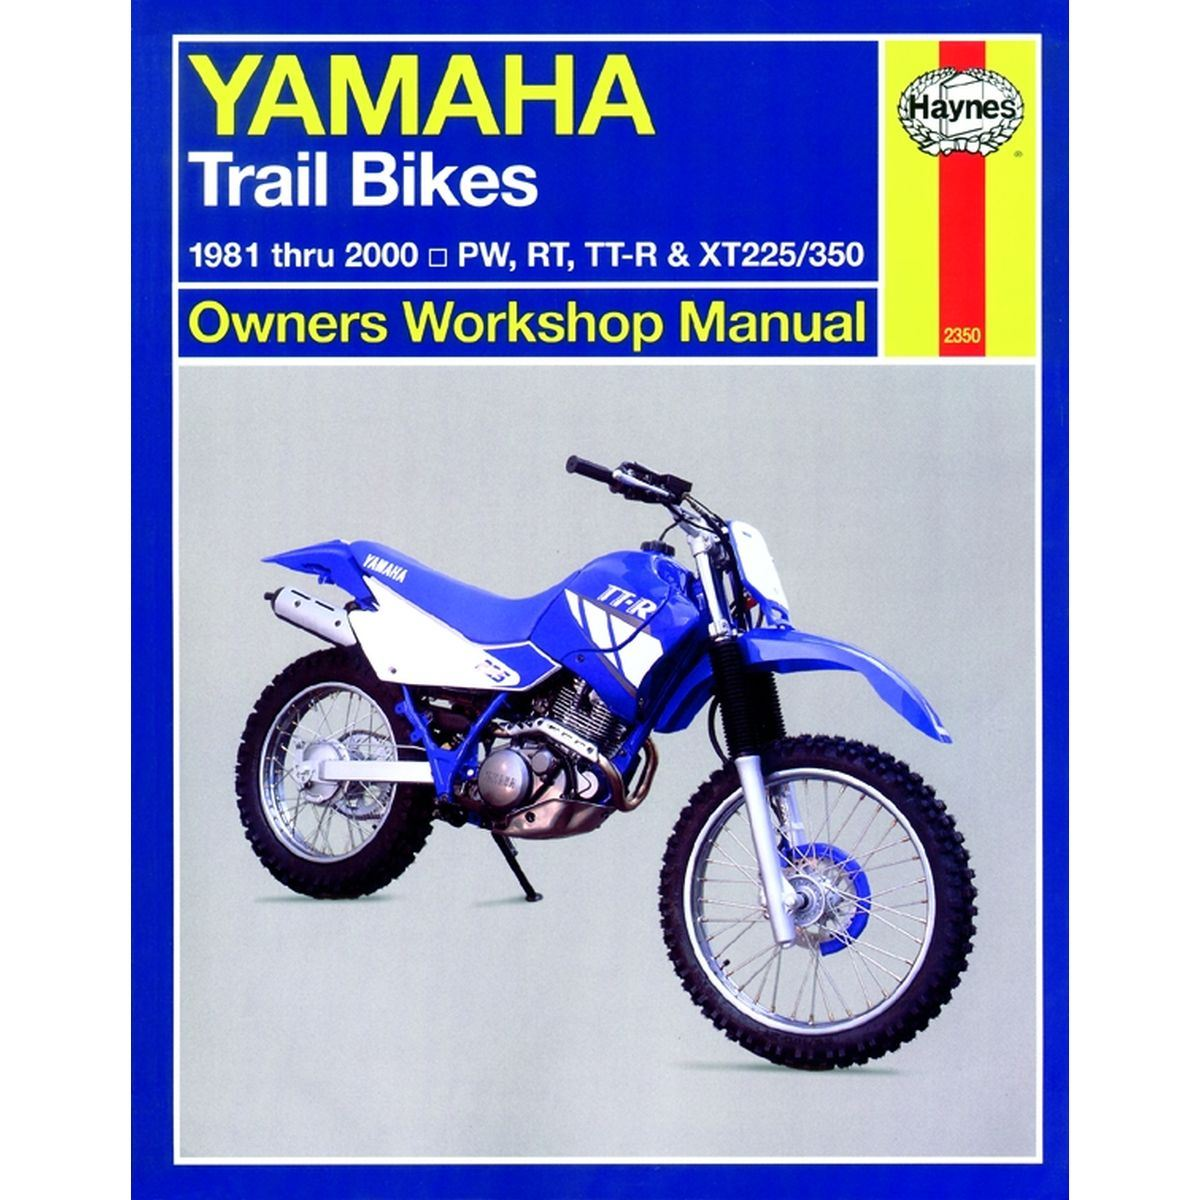 hight resolution of picture of haynes manual 2350 yamaha trail bikes owners 81 00 s order